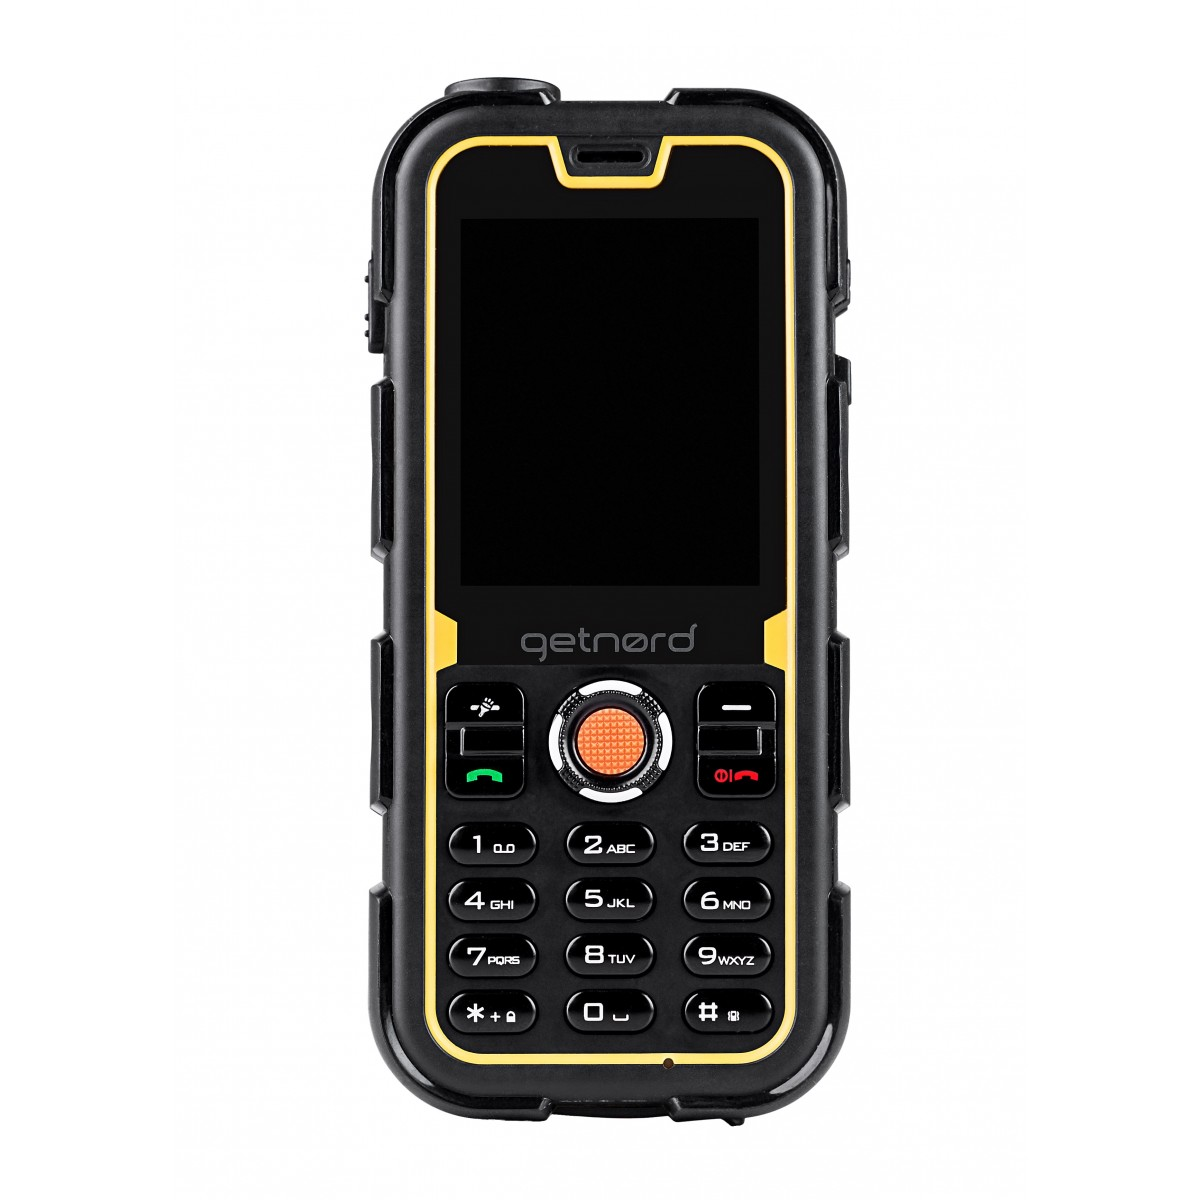 Getnord walrus ultra rugged mobile cell phone waterproof for Rugged cell phones